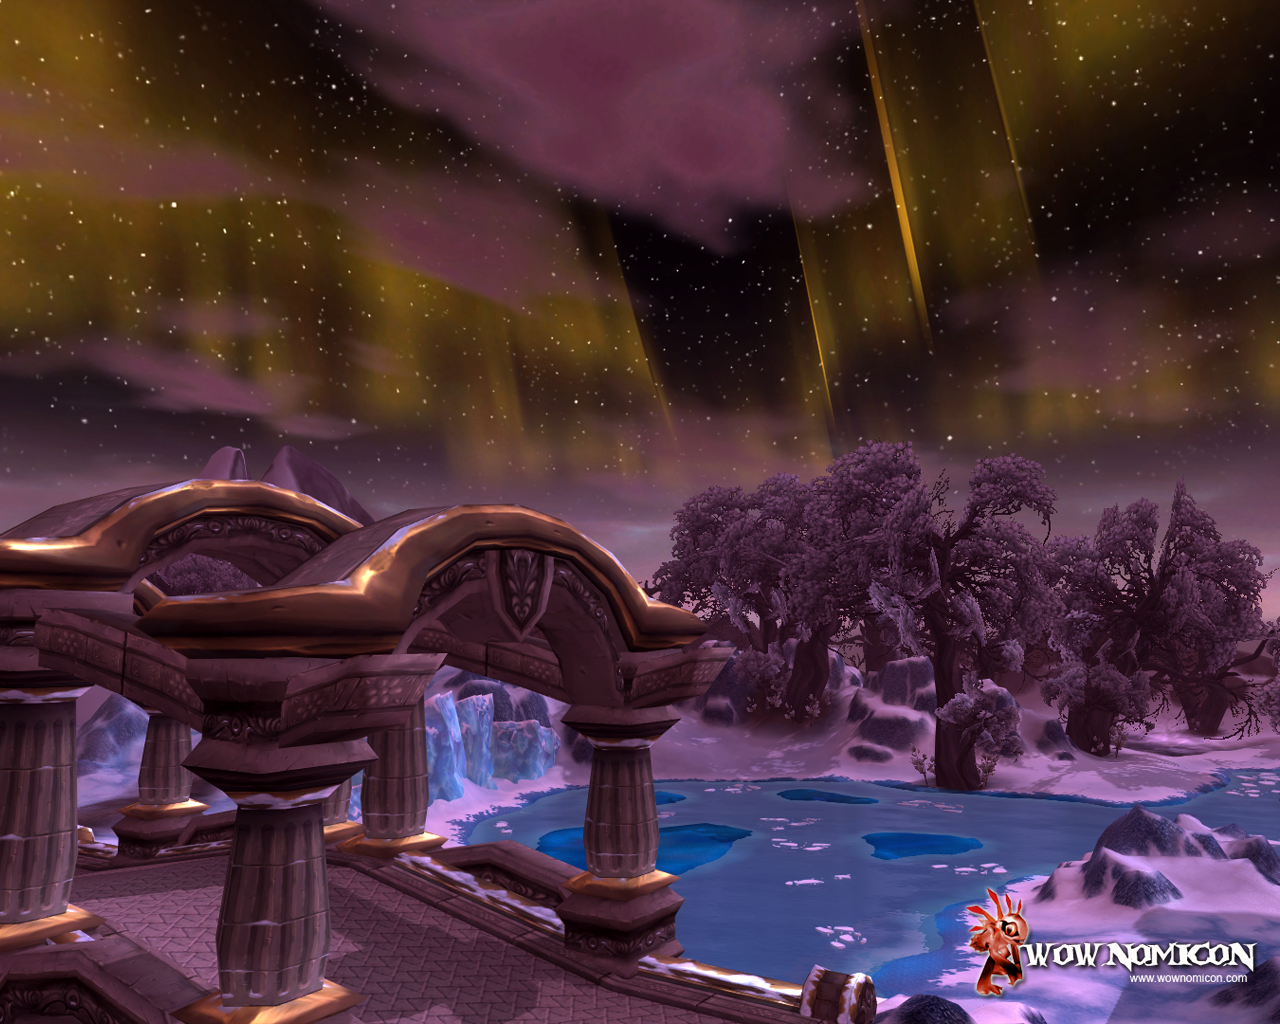 Stage West Bridge at night in Wintergrasp, Northrend. Panoramic 1920 x 1080 px Size 1280×1024 px Netbook 1024×600 px